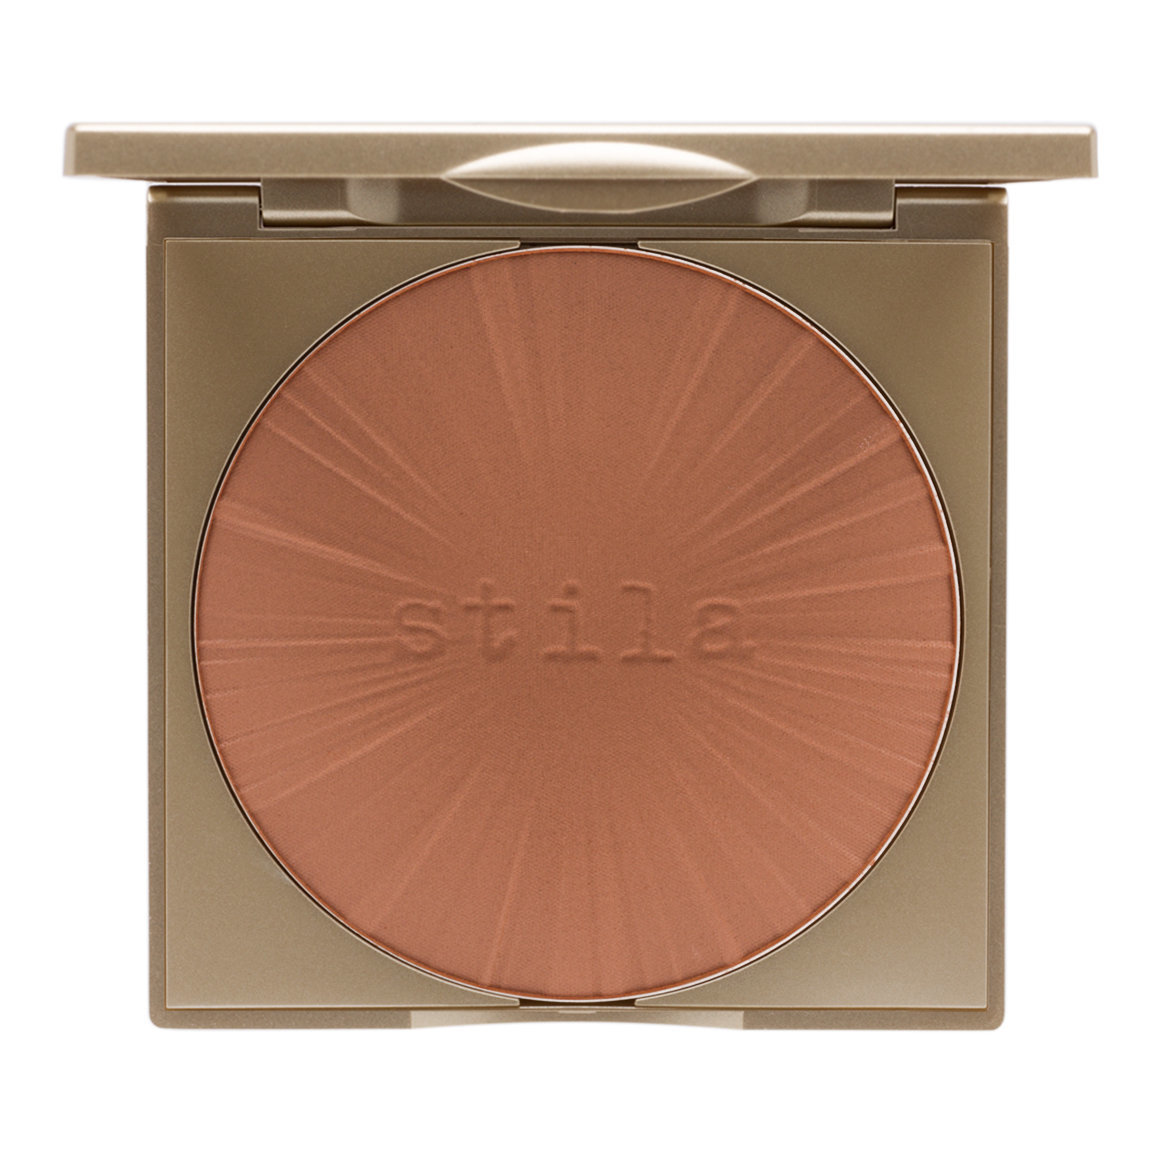 Stila Stay All Day Bronzer For Face & Body Dark product smear.